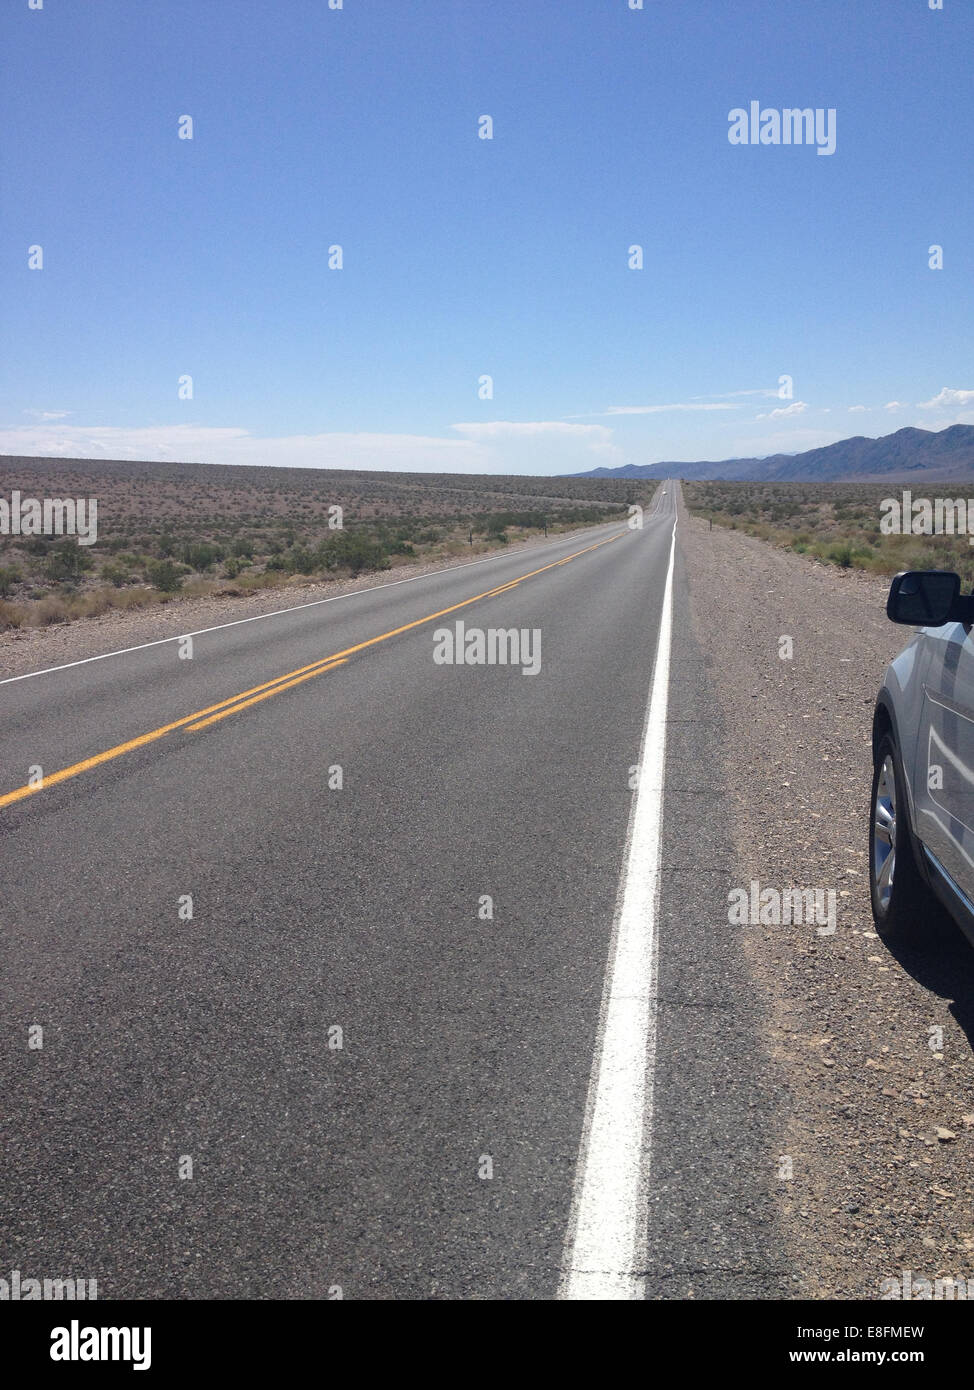 USA, Nevada, Infinity road with car parked on roadside - Stock Image